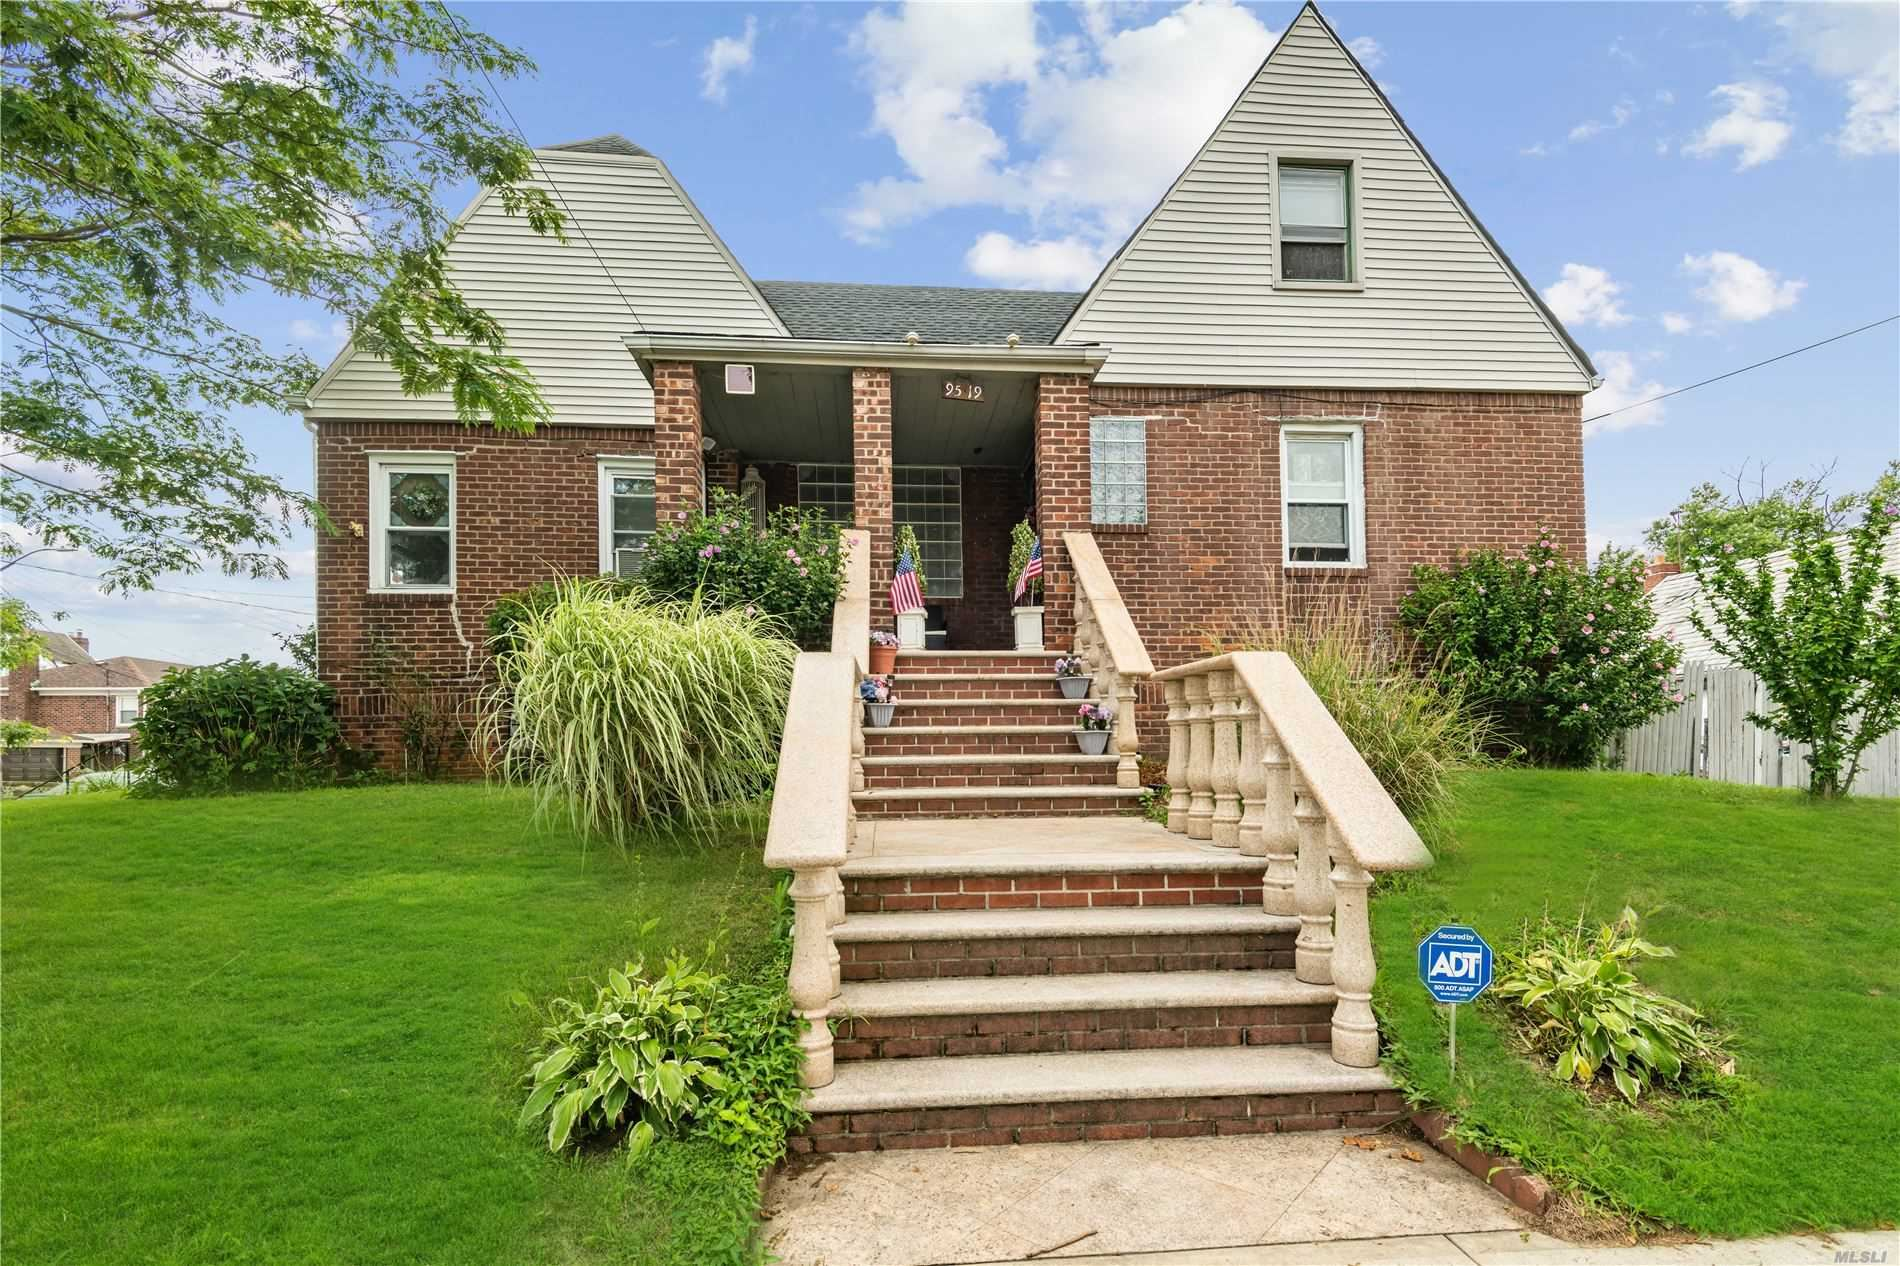 95-19 159th Avenue, Howard Beach, NY 11414 - MLS#: 3239496